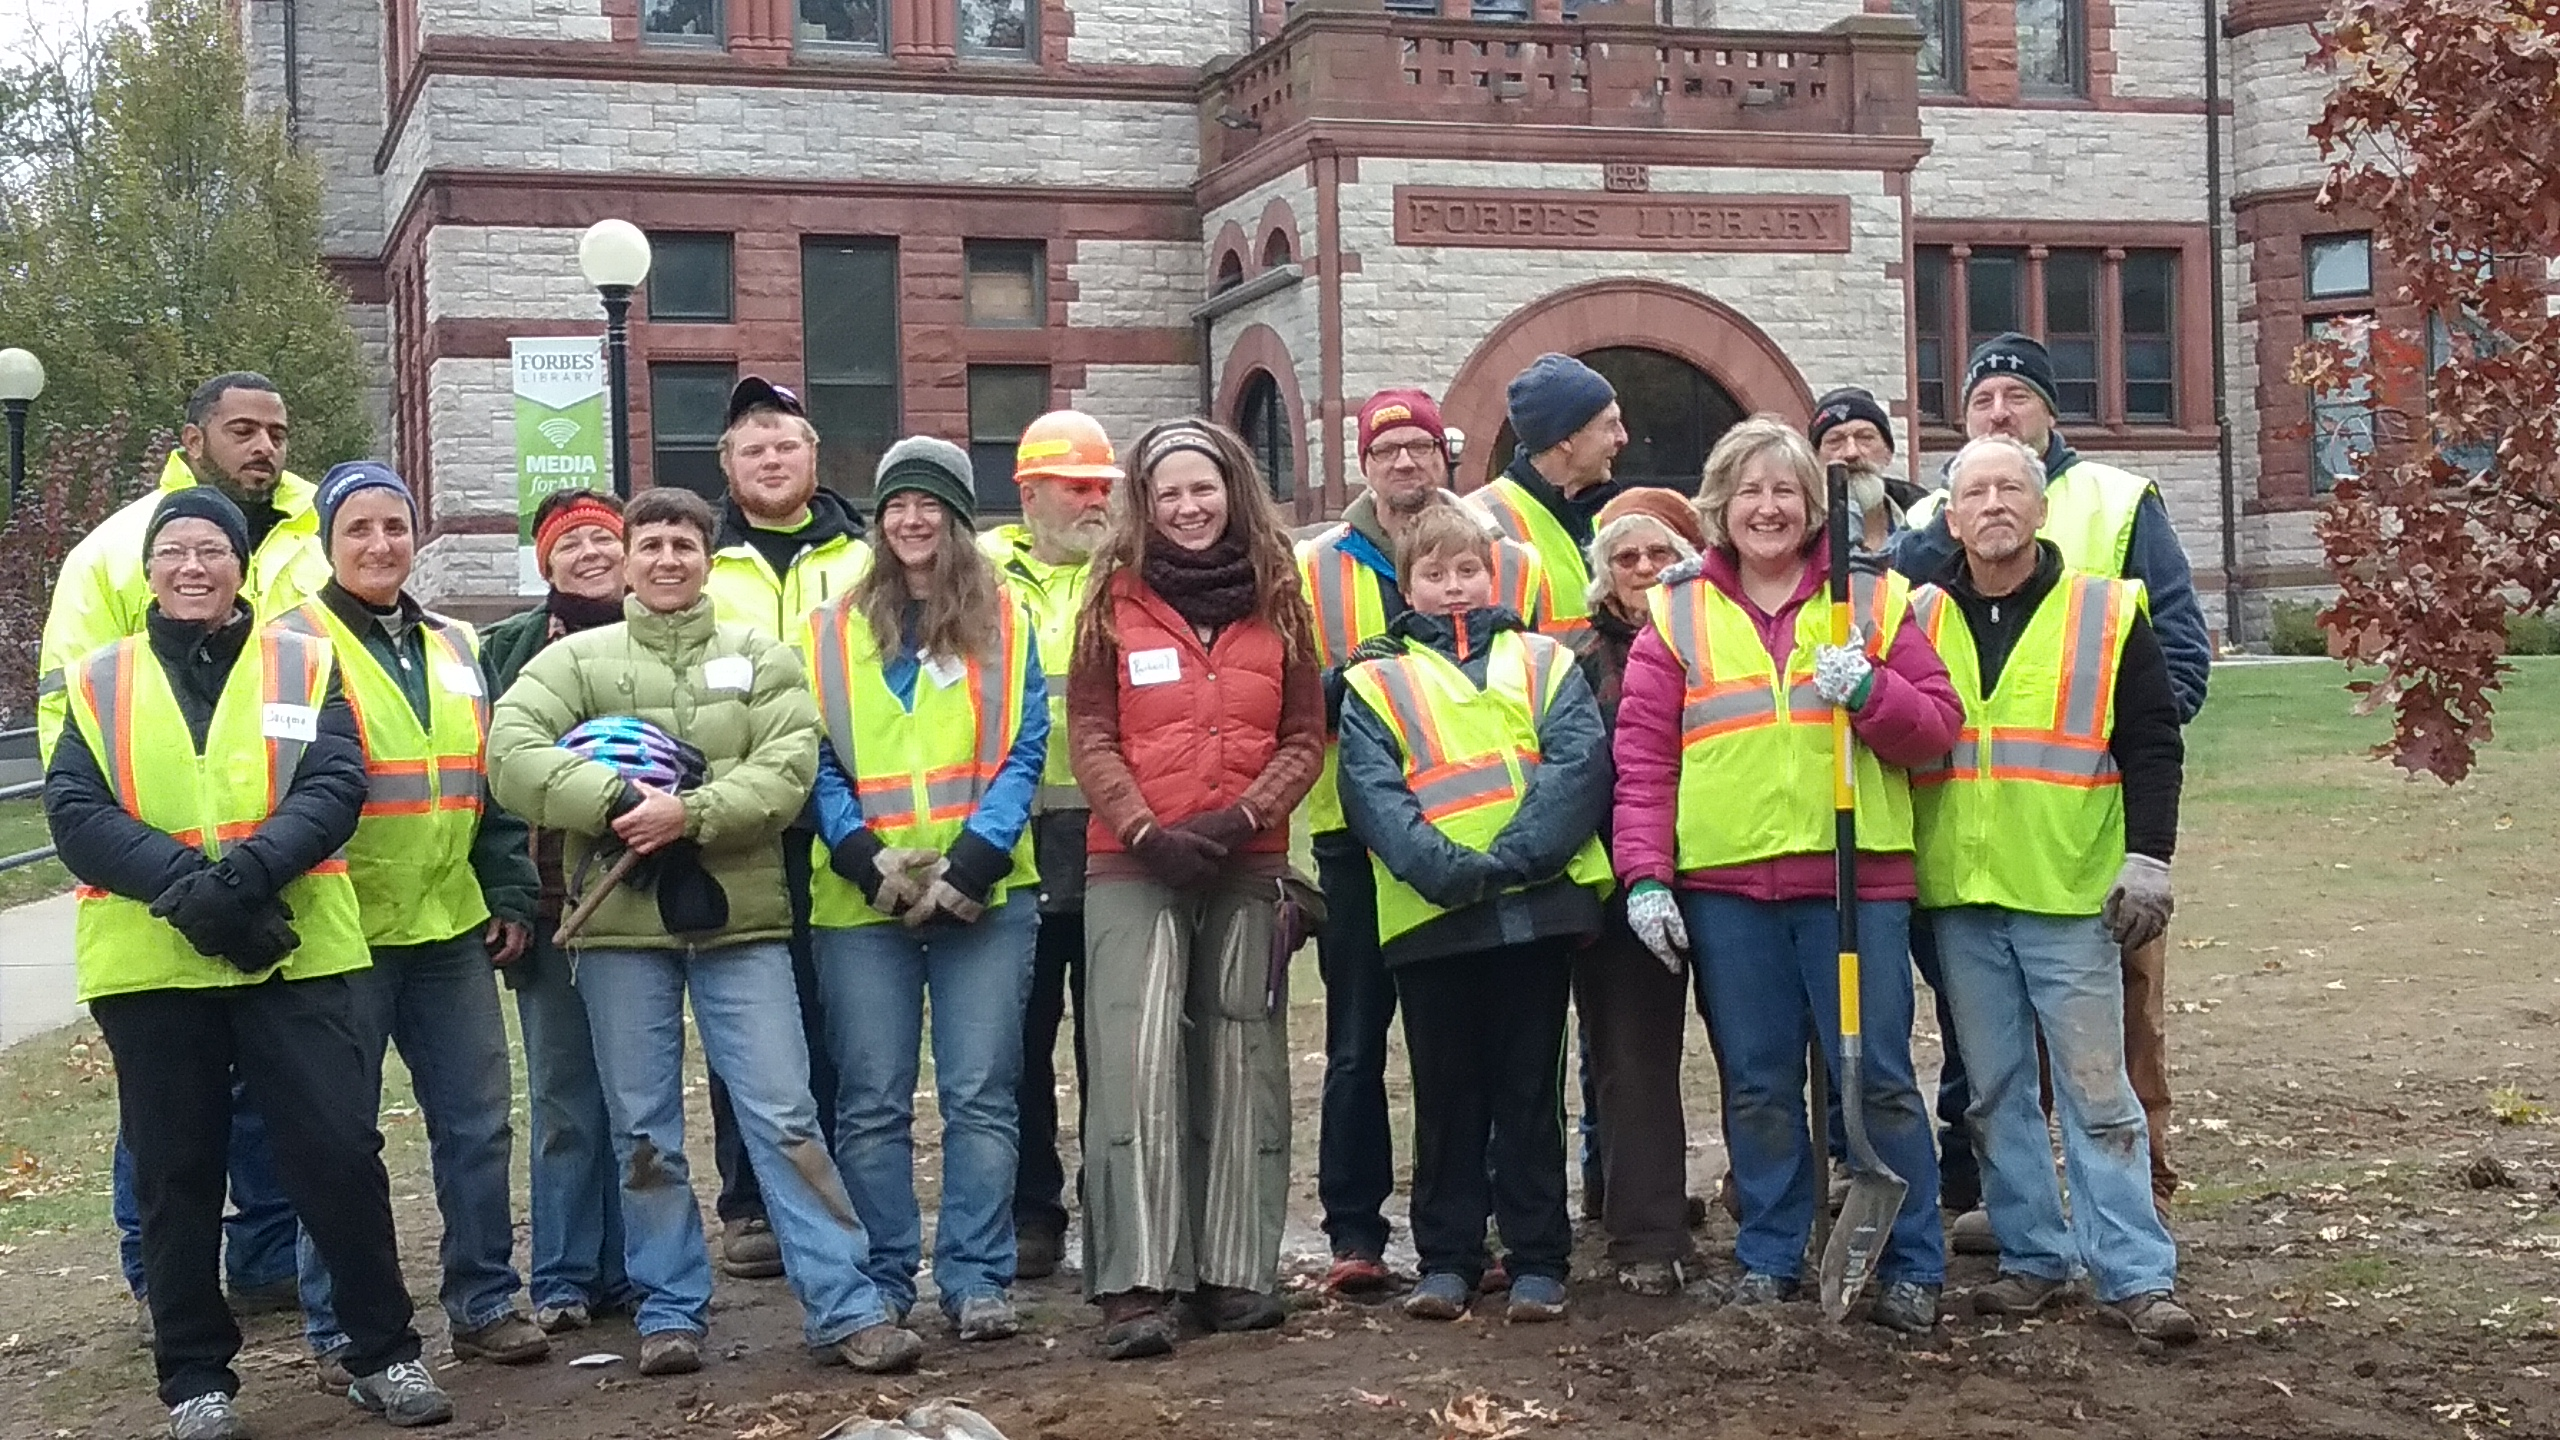 Volunteers at the Forbes Library Planting in November